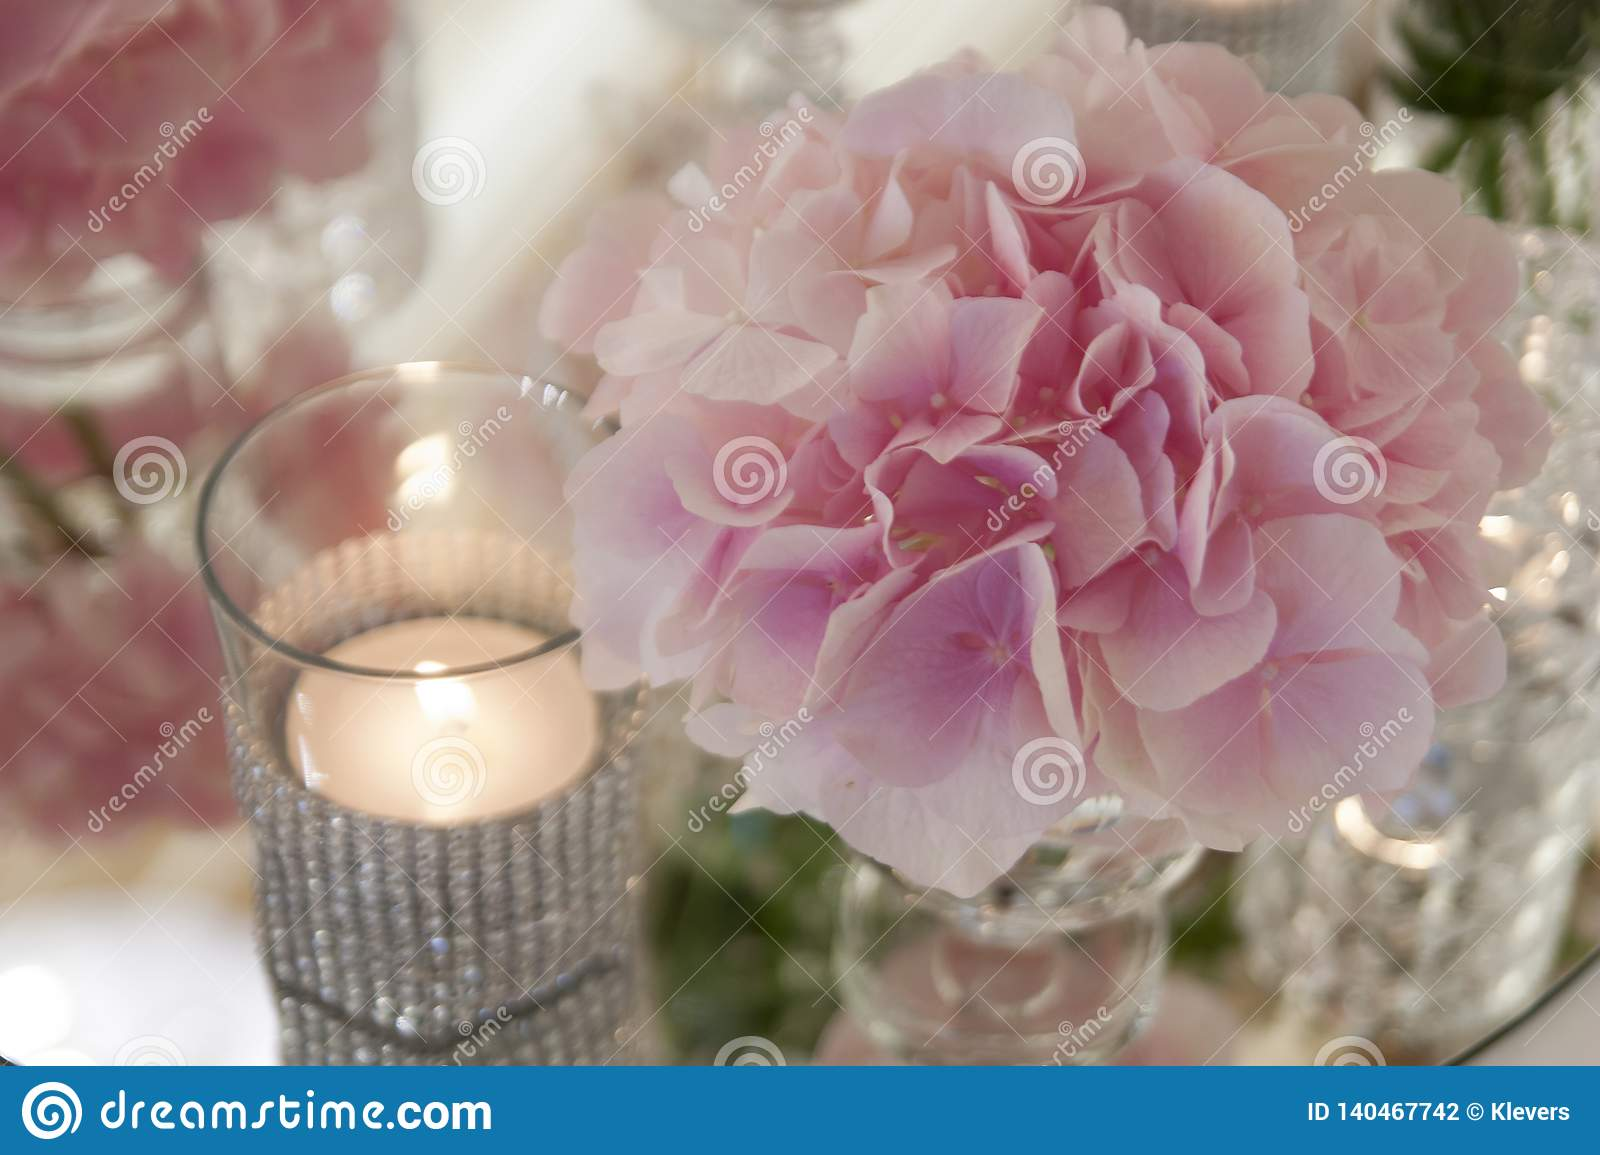 Dreamstime.com & Pink Flowers In Small Glass Vases Stand On The Mirror On The ...